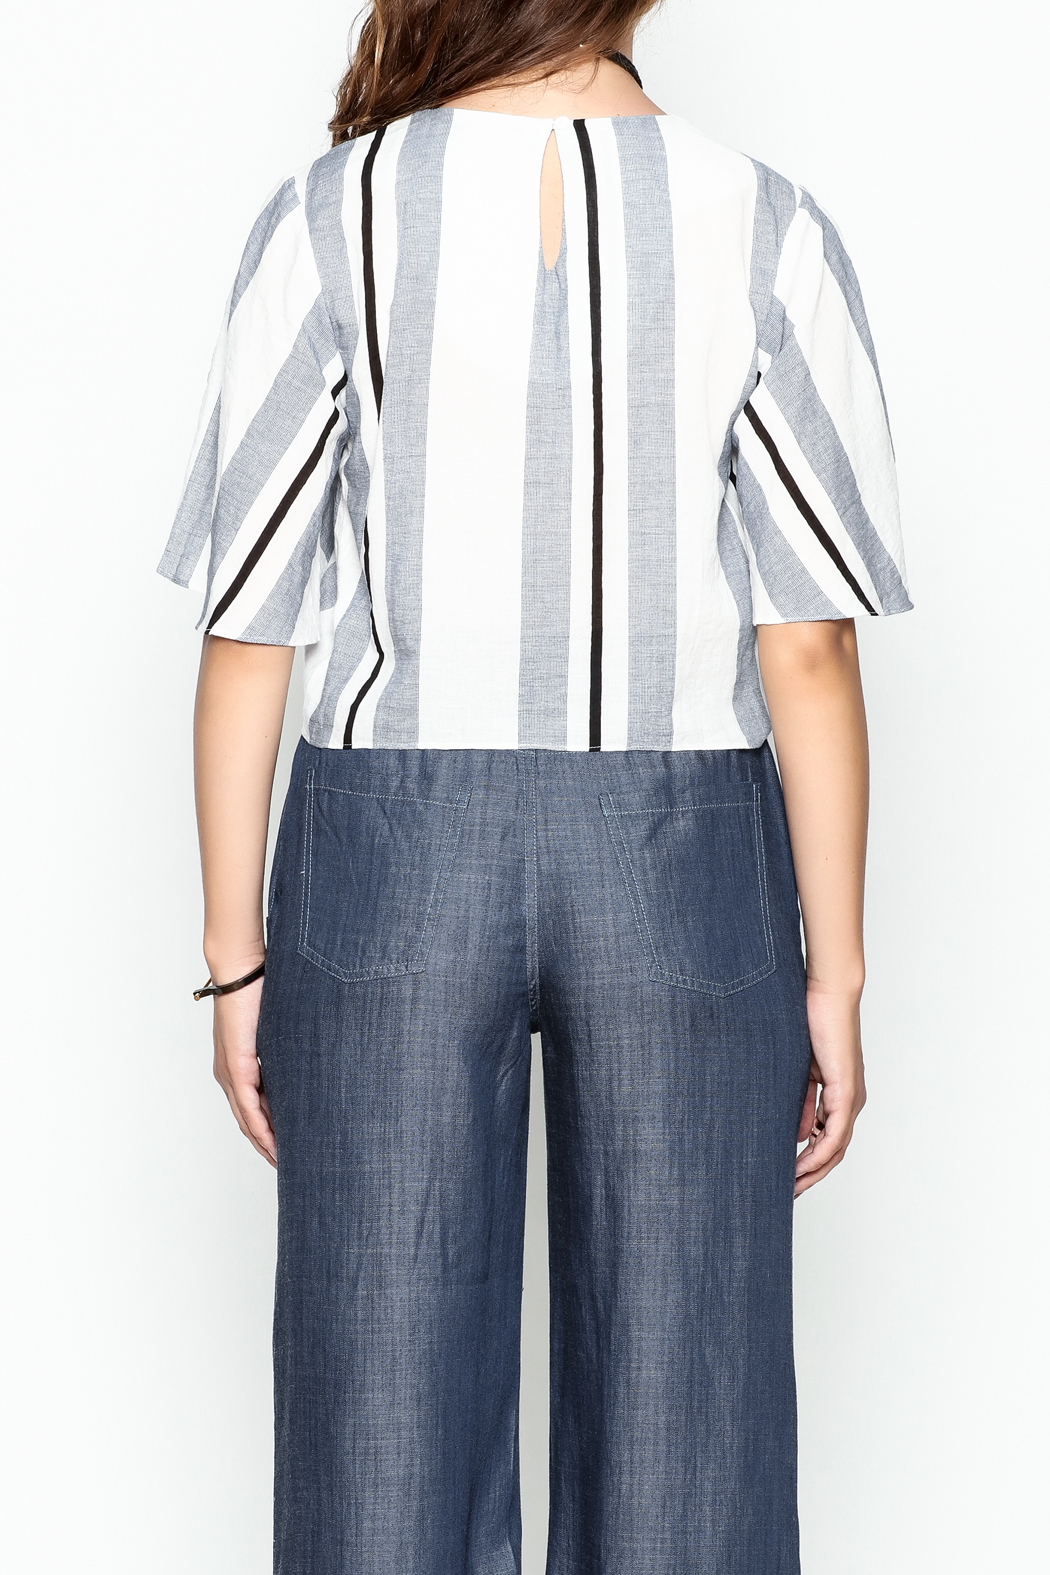 Lumiere Stripe Knot Top - Back Cropped Image